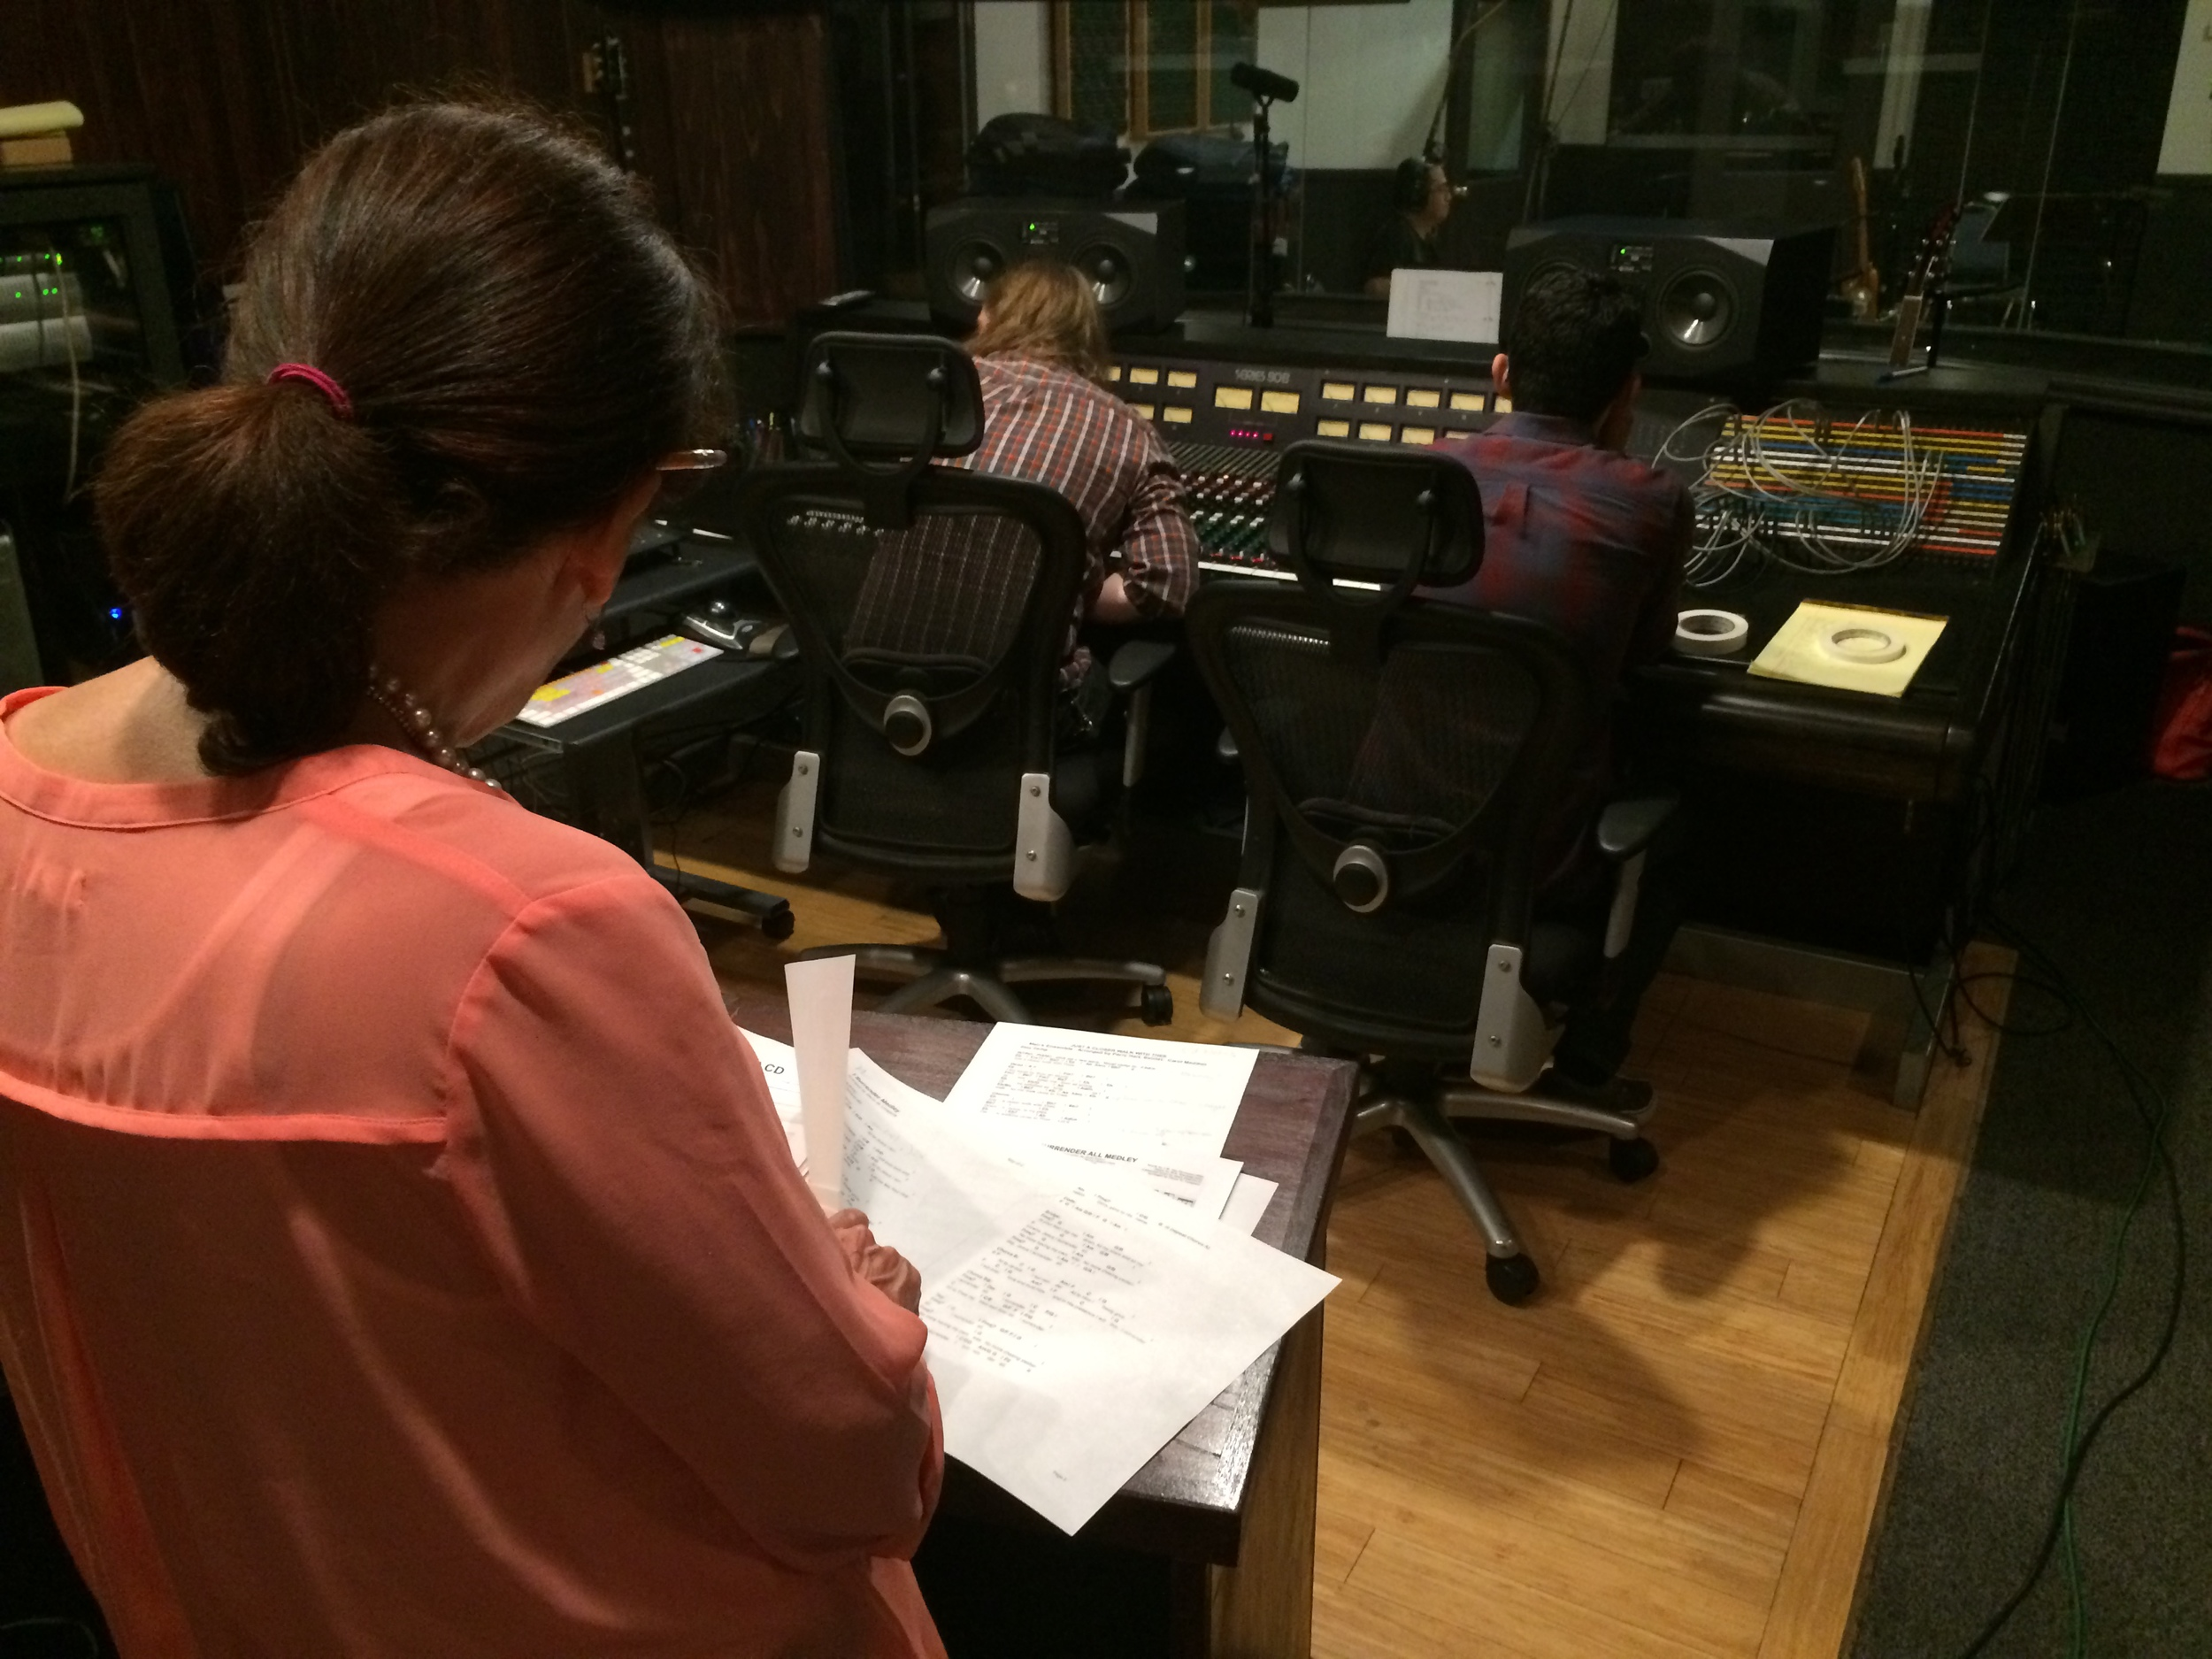 Katheryne Levin directing the session in control room .